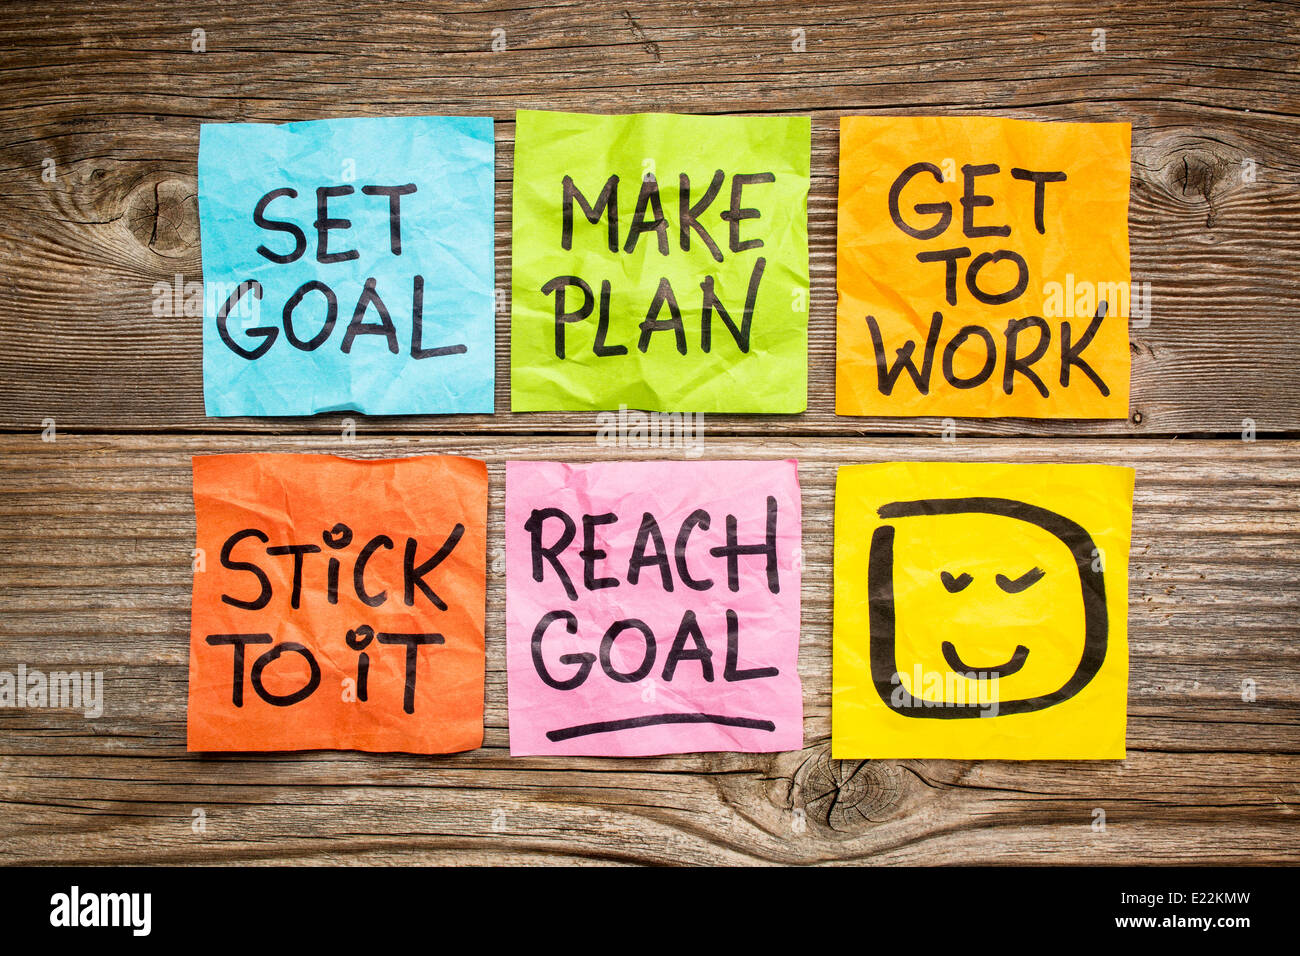 set goal, make plan, work, stick to it, reach goal - a success concept presented with colorful sticky notes - Stock Image